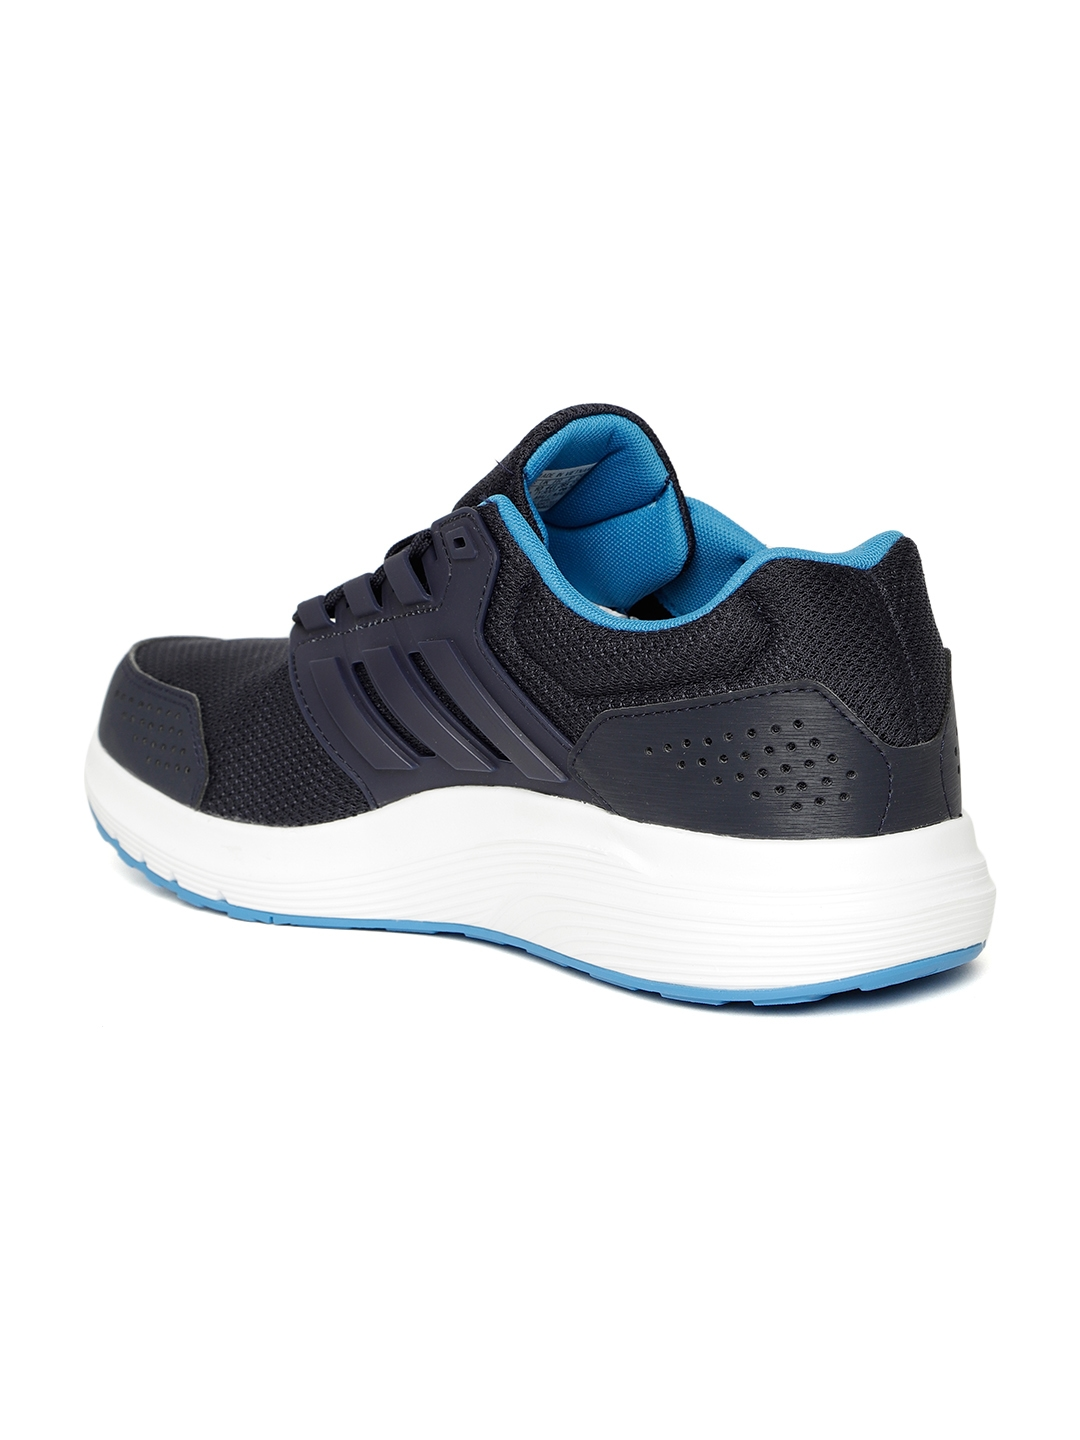 new product a0e80 47a8f Adidas Men Navy Blue GALAXY 4 Running Shoes